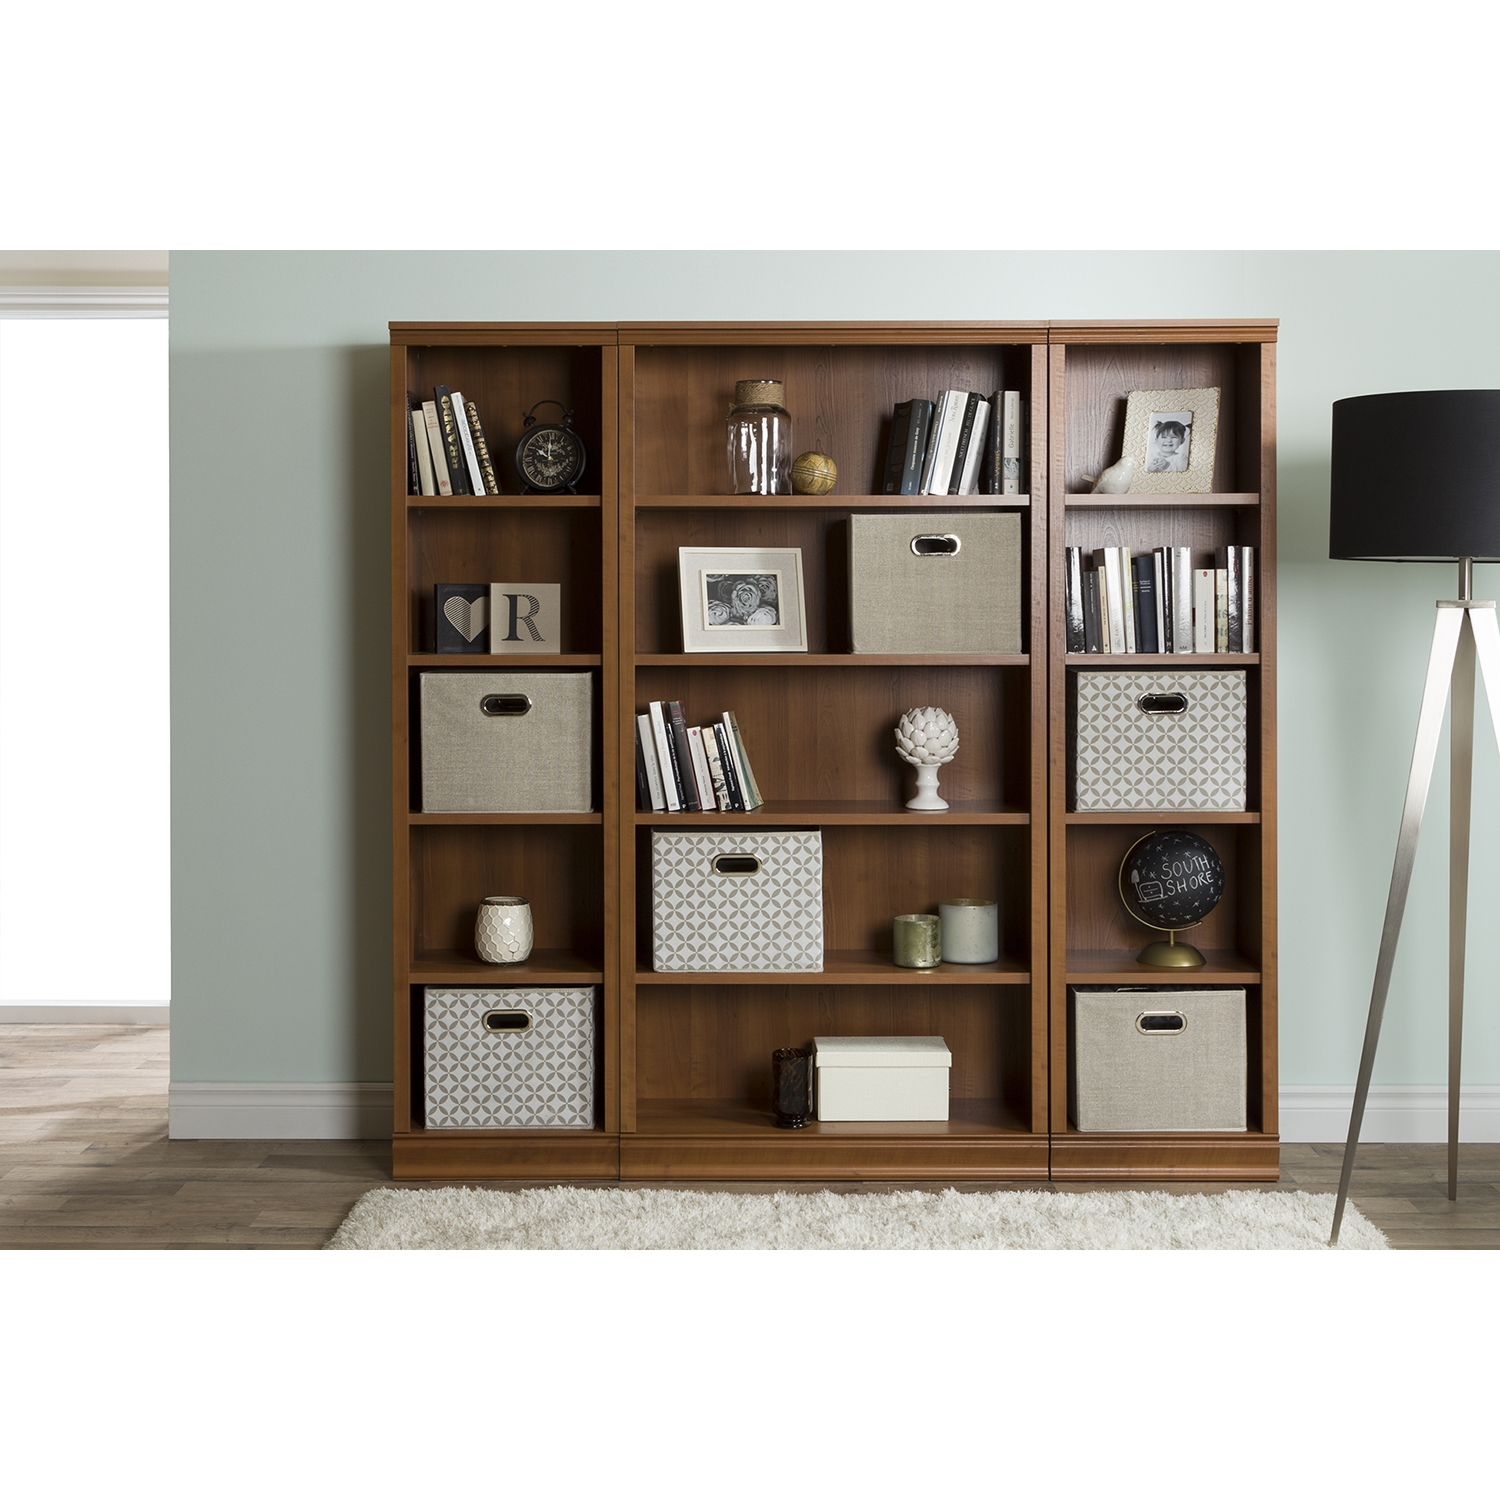 Morgan 5 Shelves Bookcase - Morgan Cherry - SS-10146